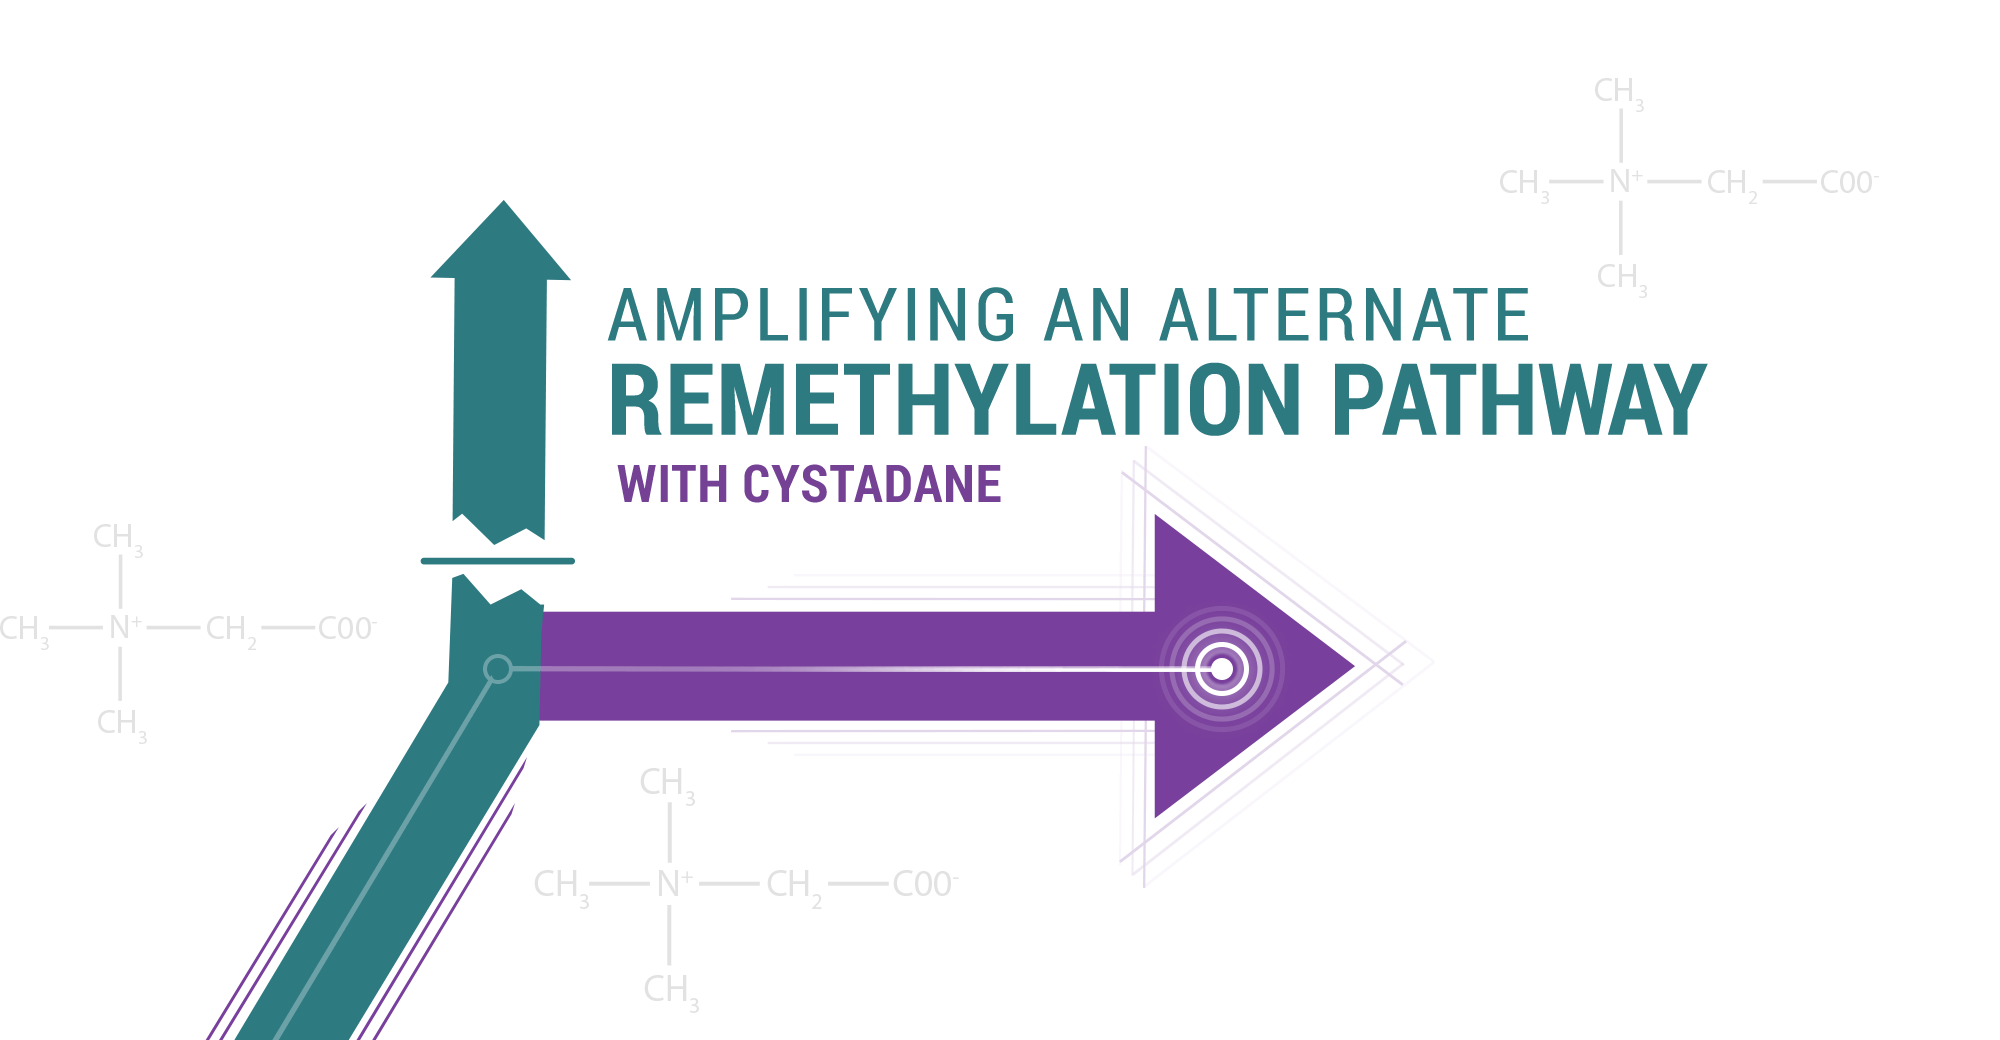 Image of arrows and chemical compositions representing the creation of an alternate remethylation pathway with CYSTADANE